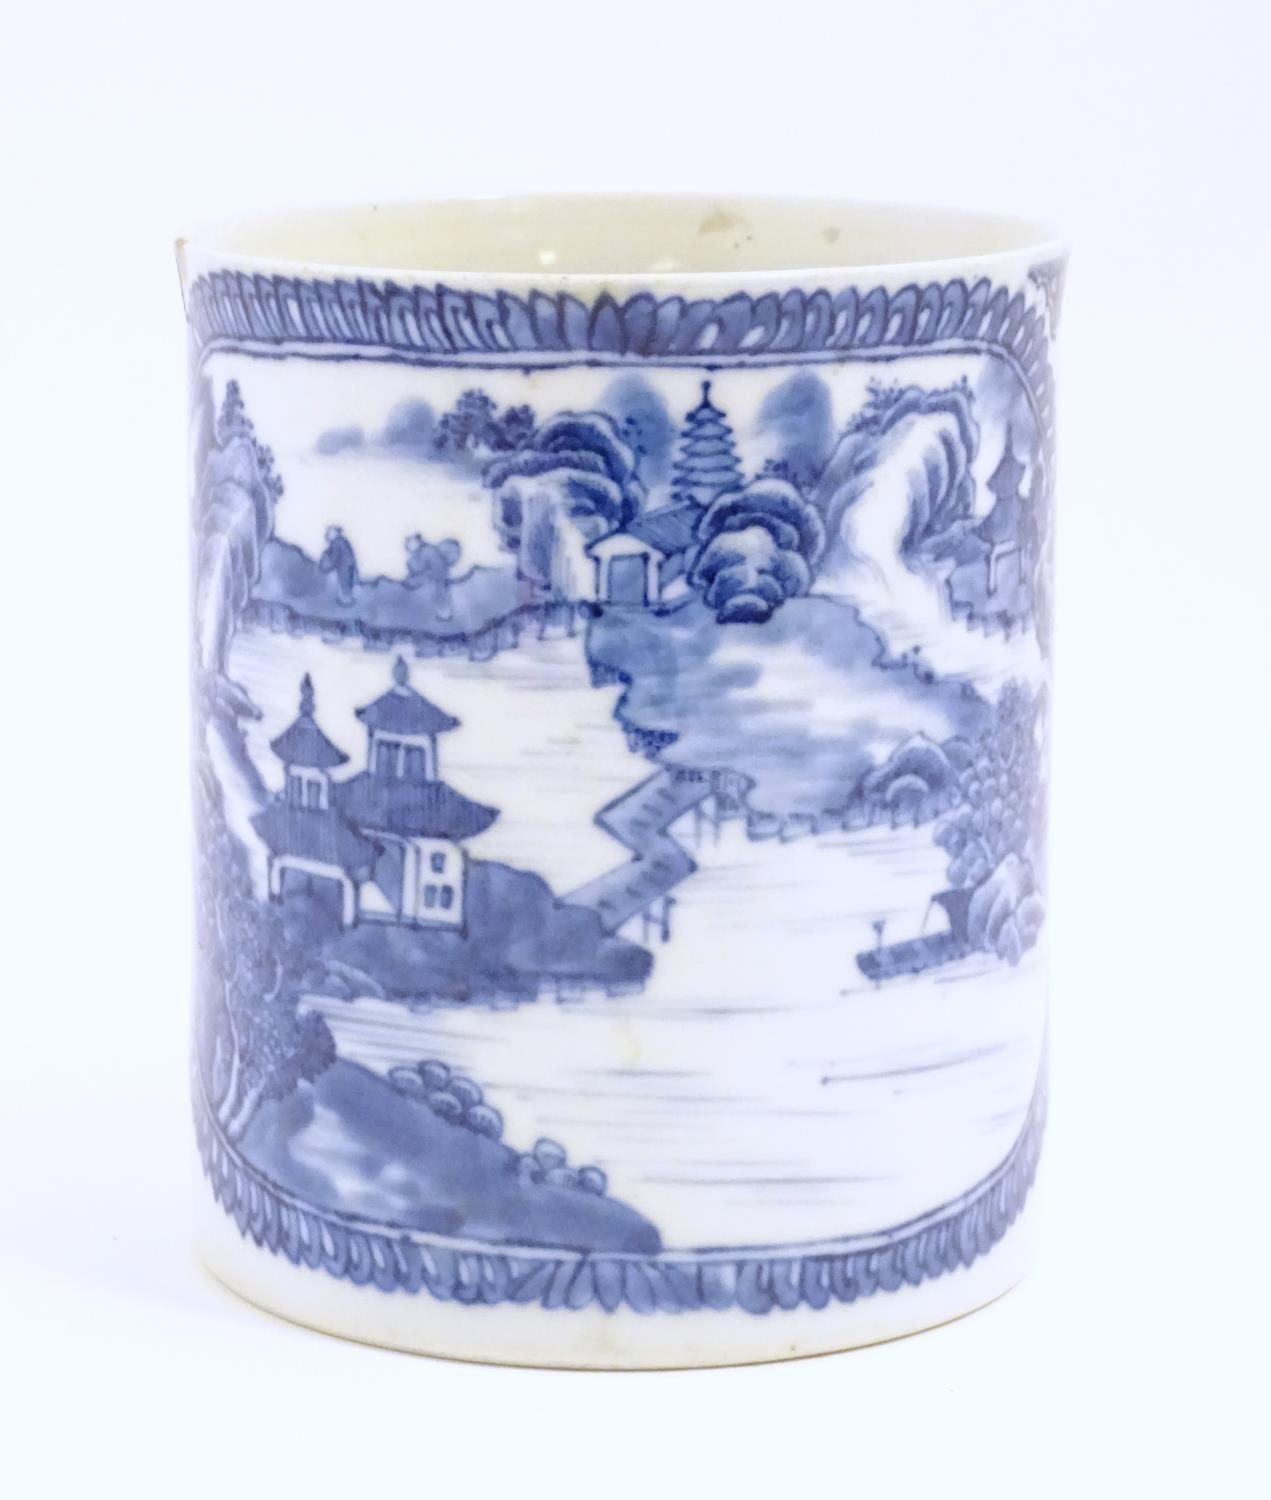 A Chinese blue and white export mug depicting a landscape scene with pagodas, with floral and - Image 5 of 6